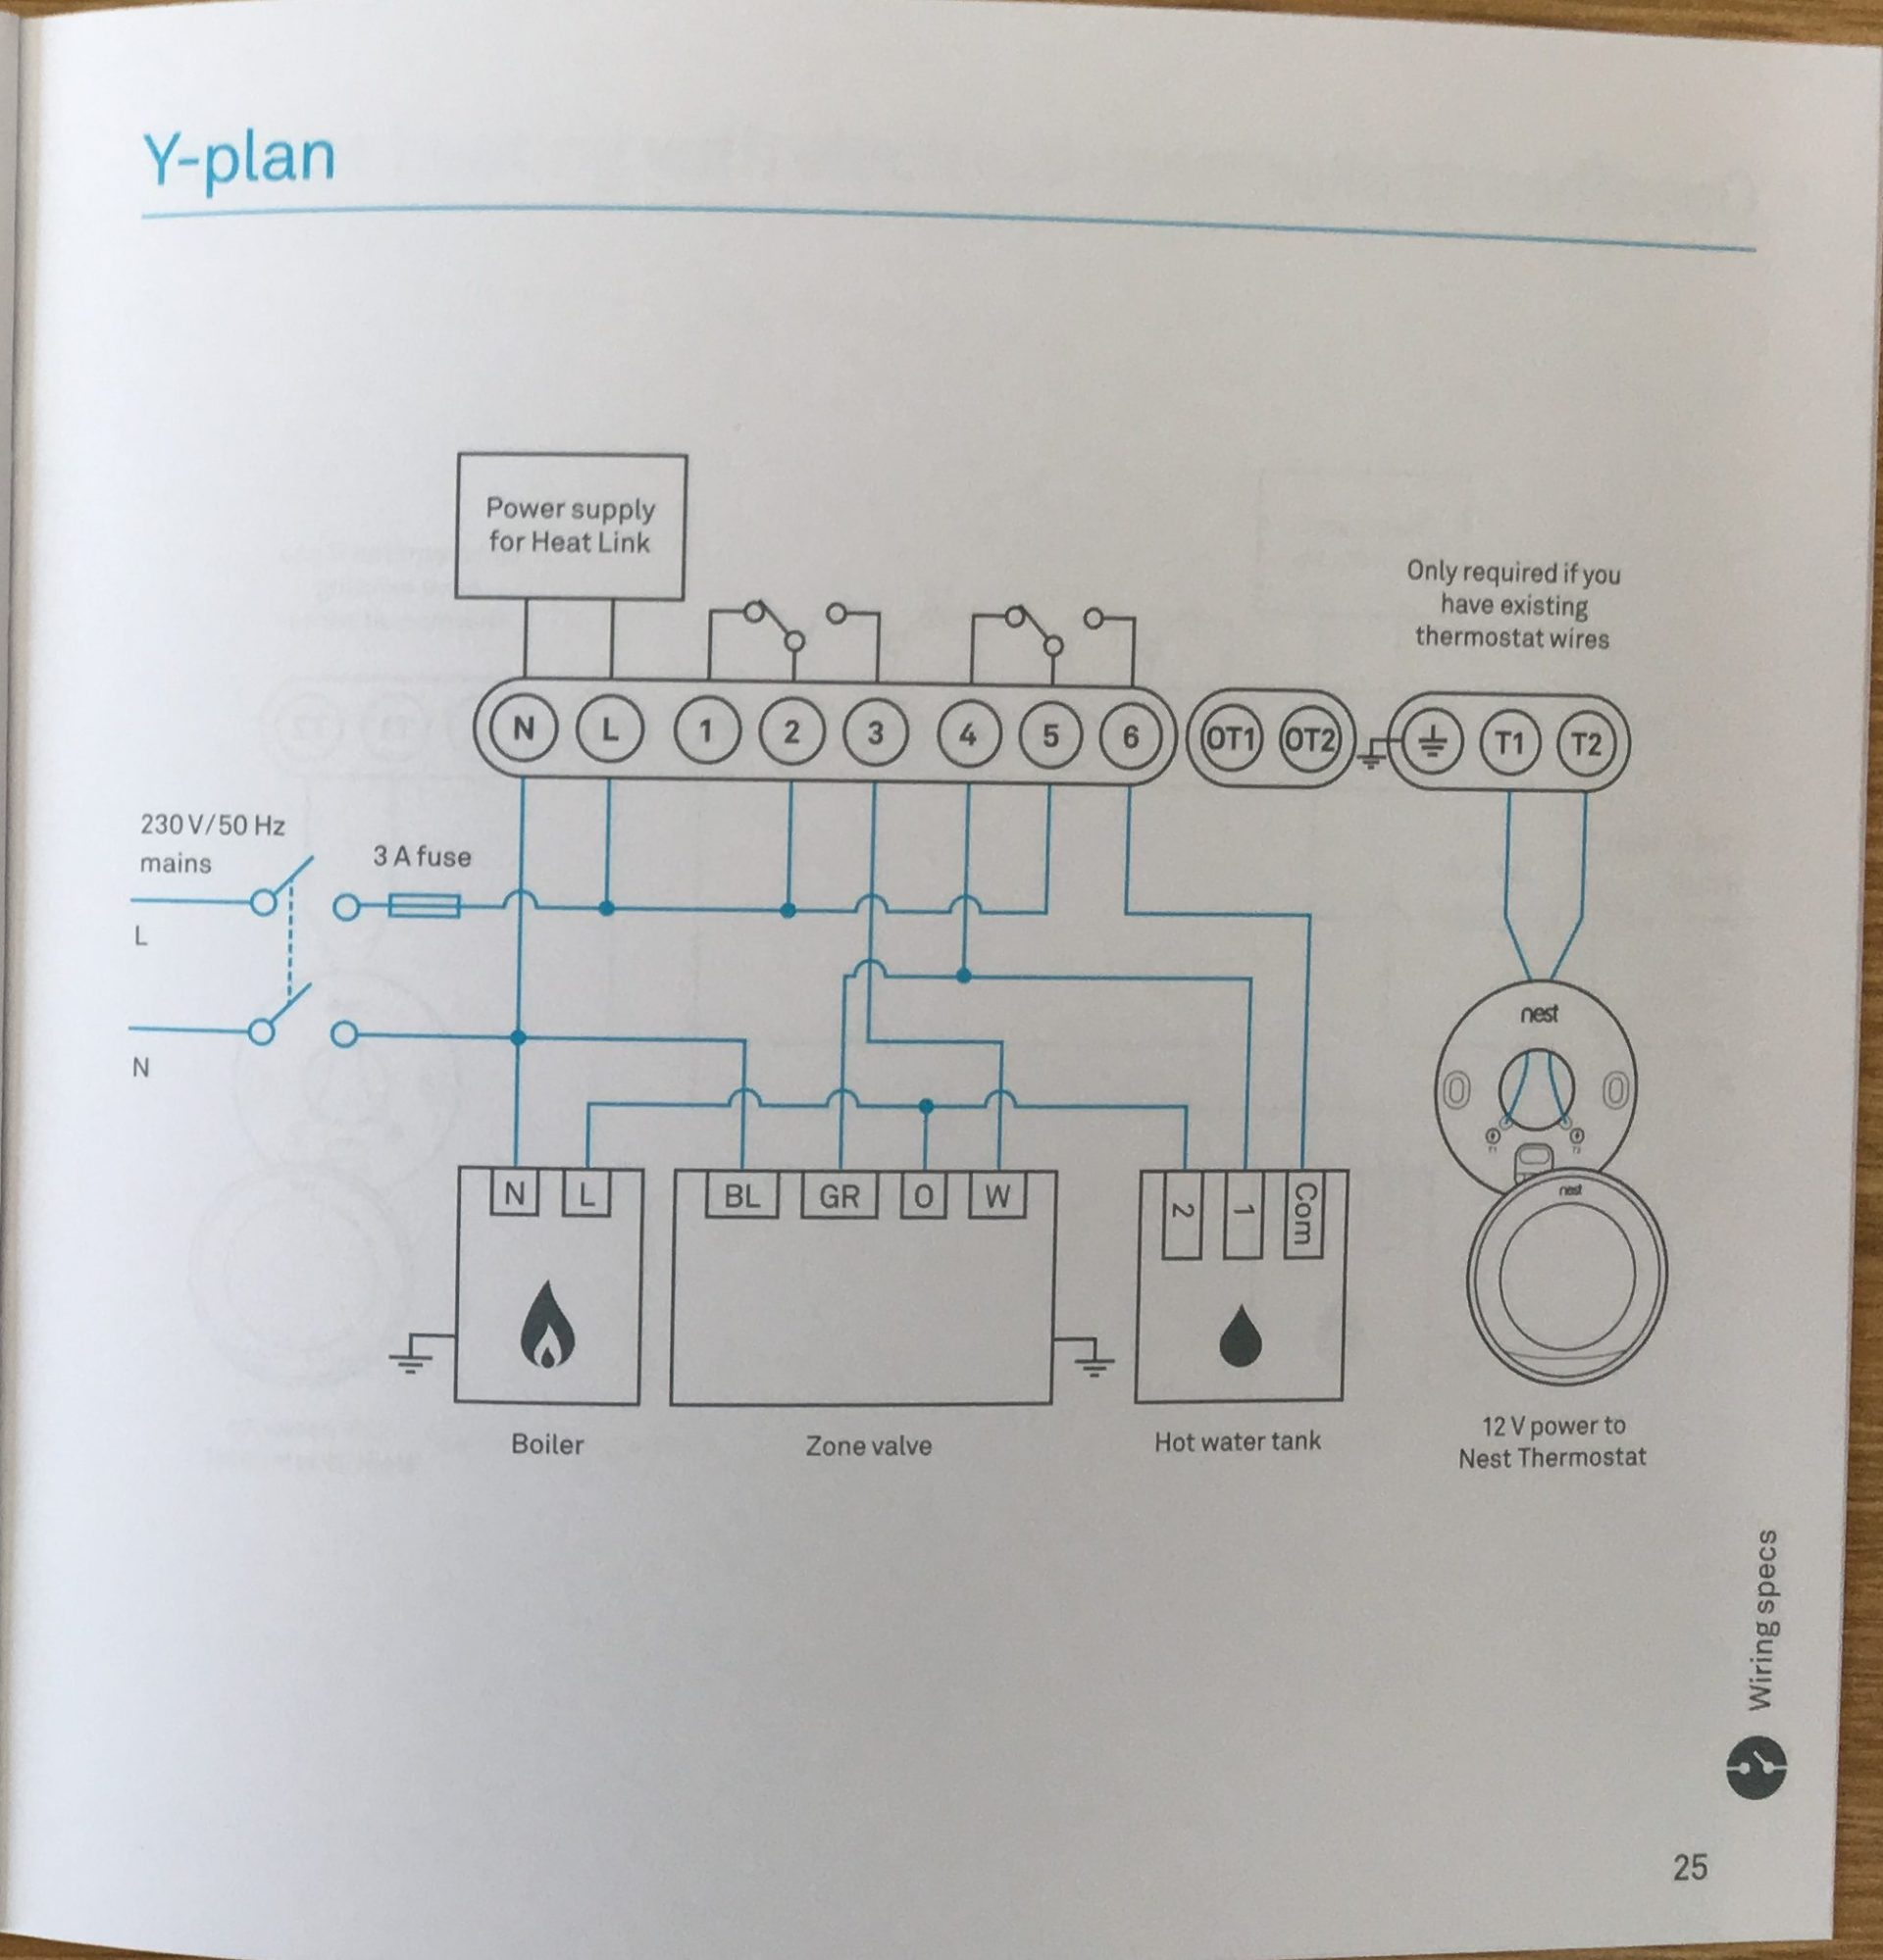 How To Install The Nest Learning Thermostat (3Rd Gen) In A Y-Plan - Nest 3Rd Generation Wiring Diagram S Plan